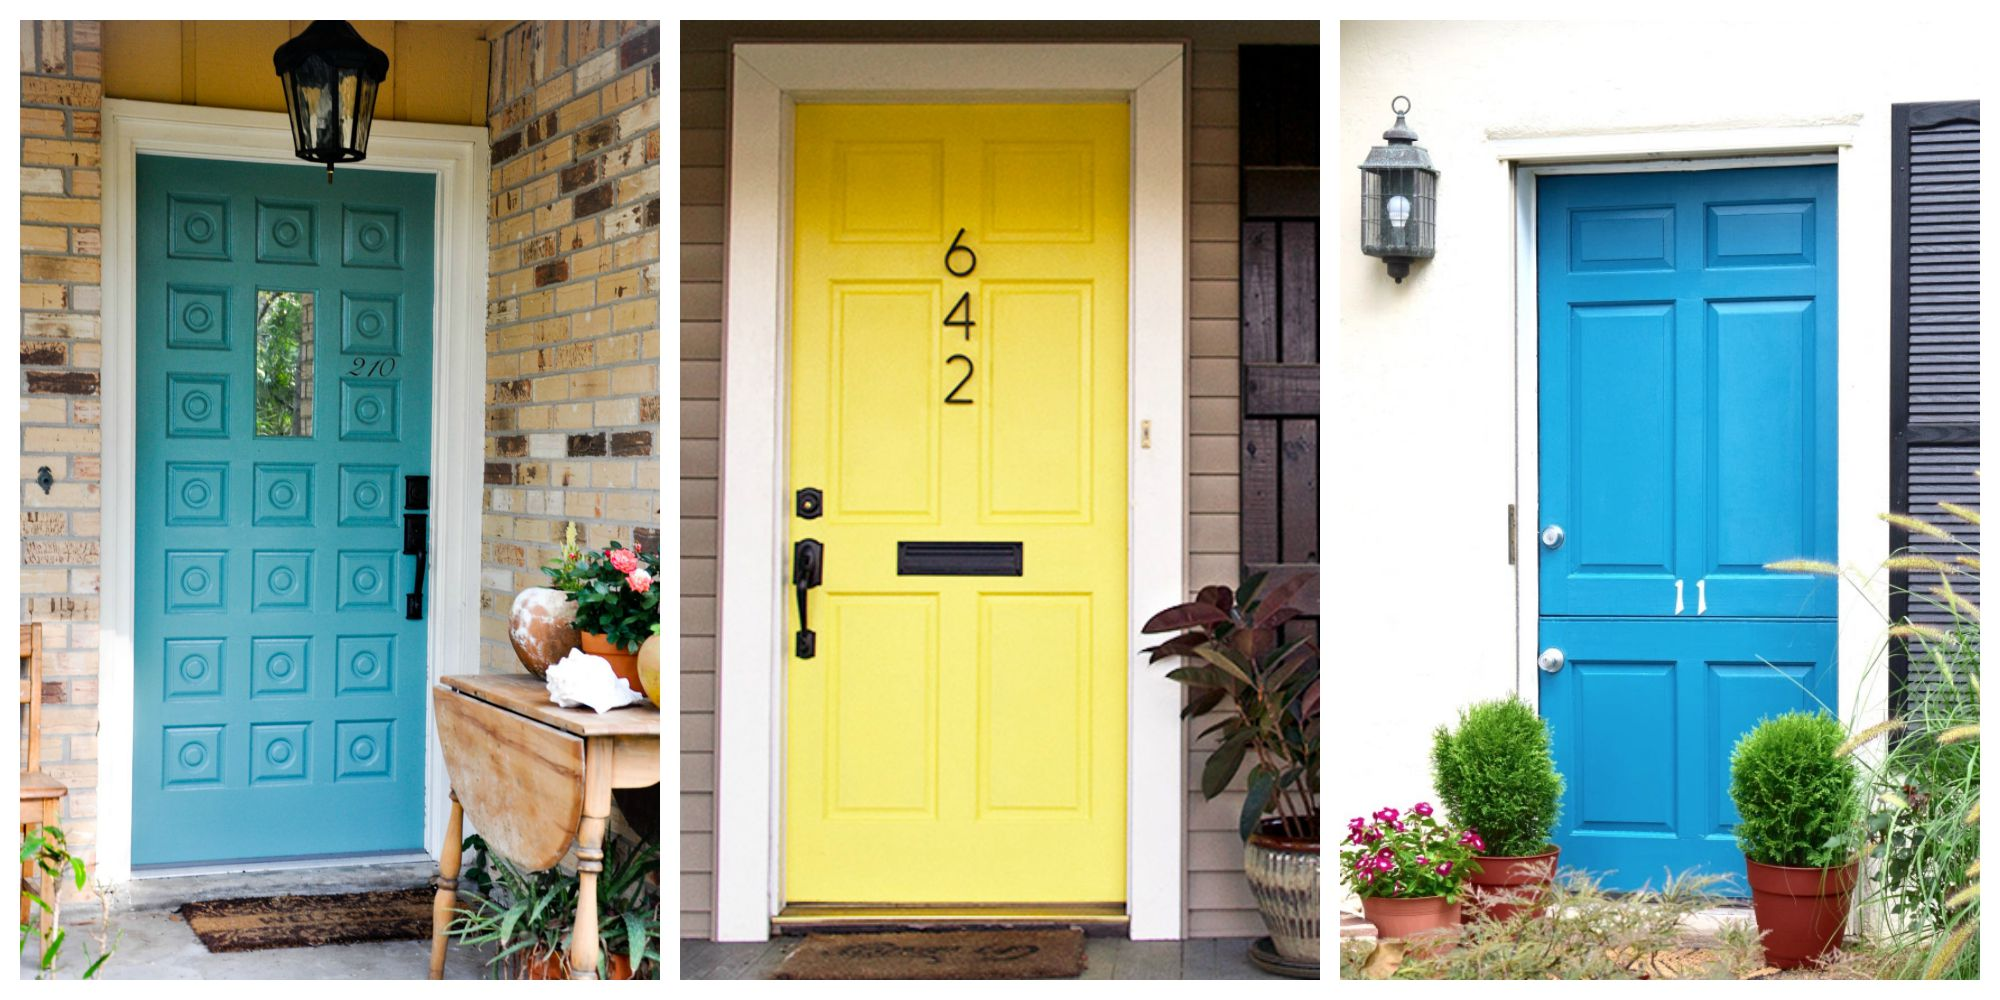 8 front door makeover ideas how to makeover your home front door - Front door color ideas inspirations can use ...